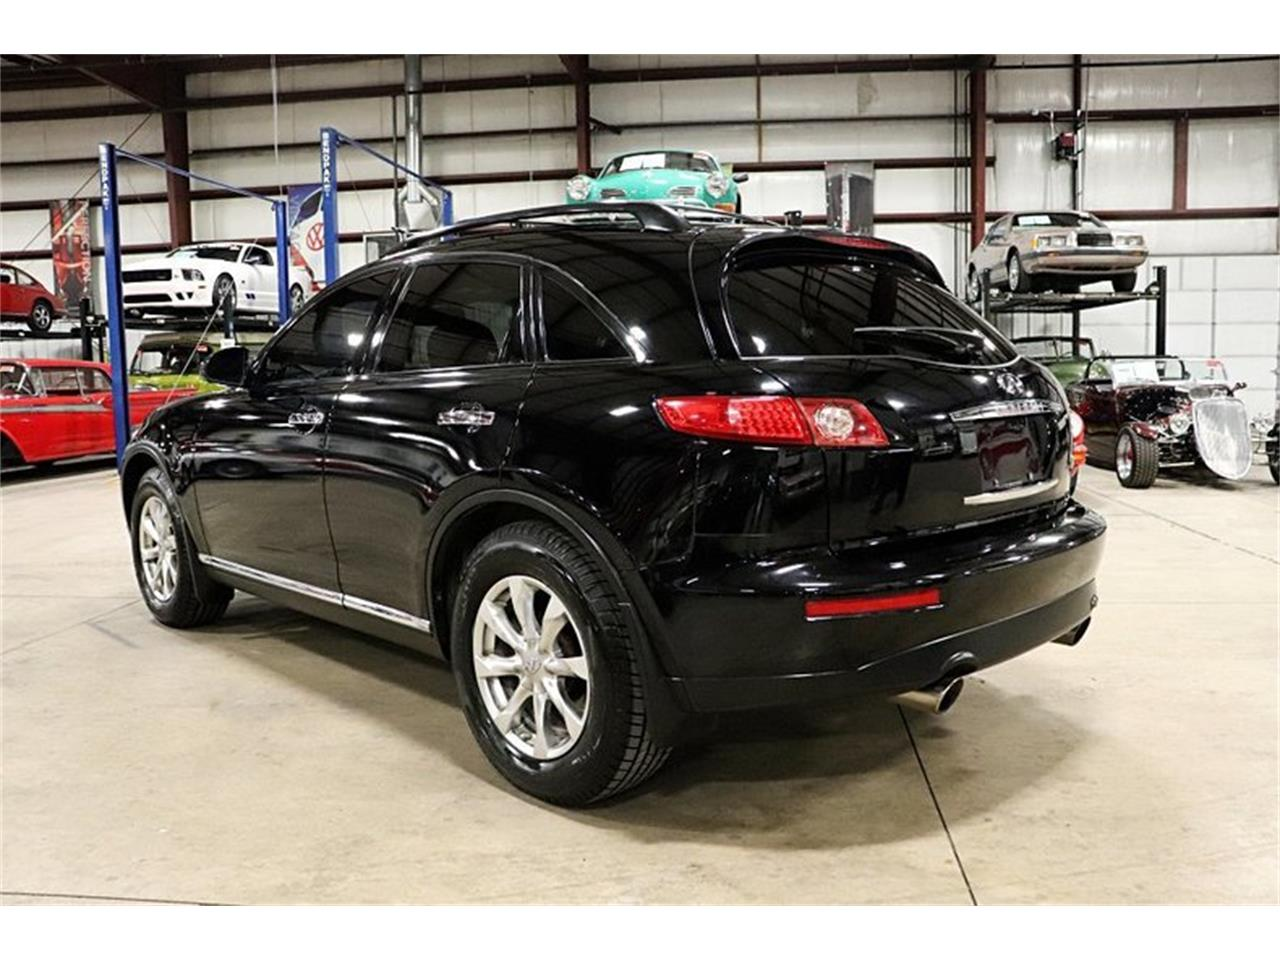 Large Picture of '08 Infiniti FX35 located in Michigan - $7,900.00 Offered by GR Auto Gallery - PY0U